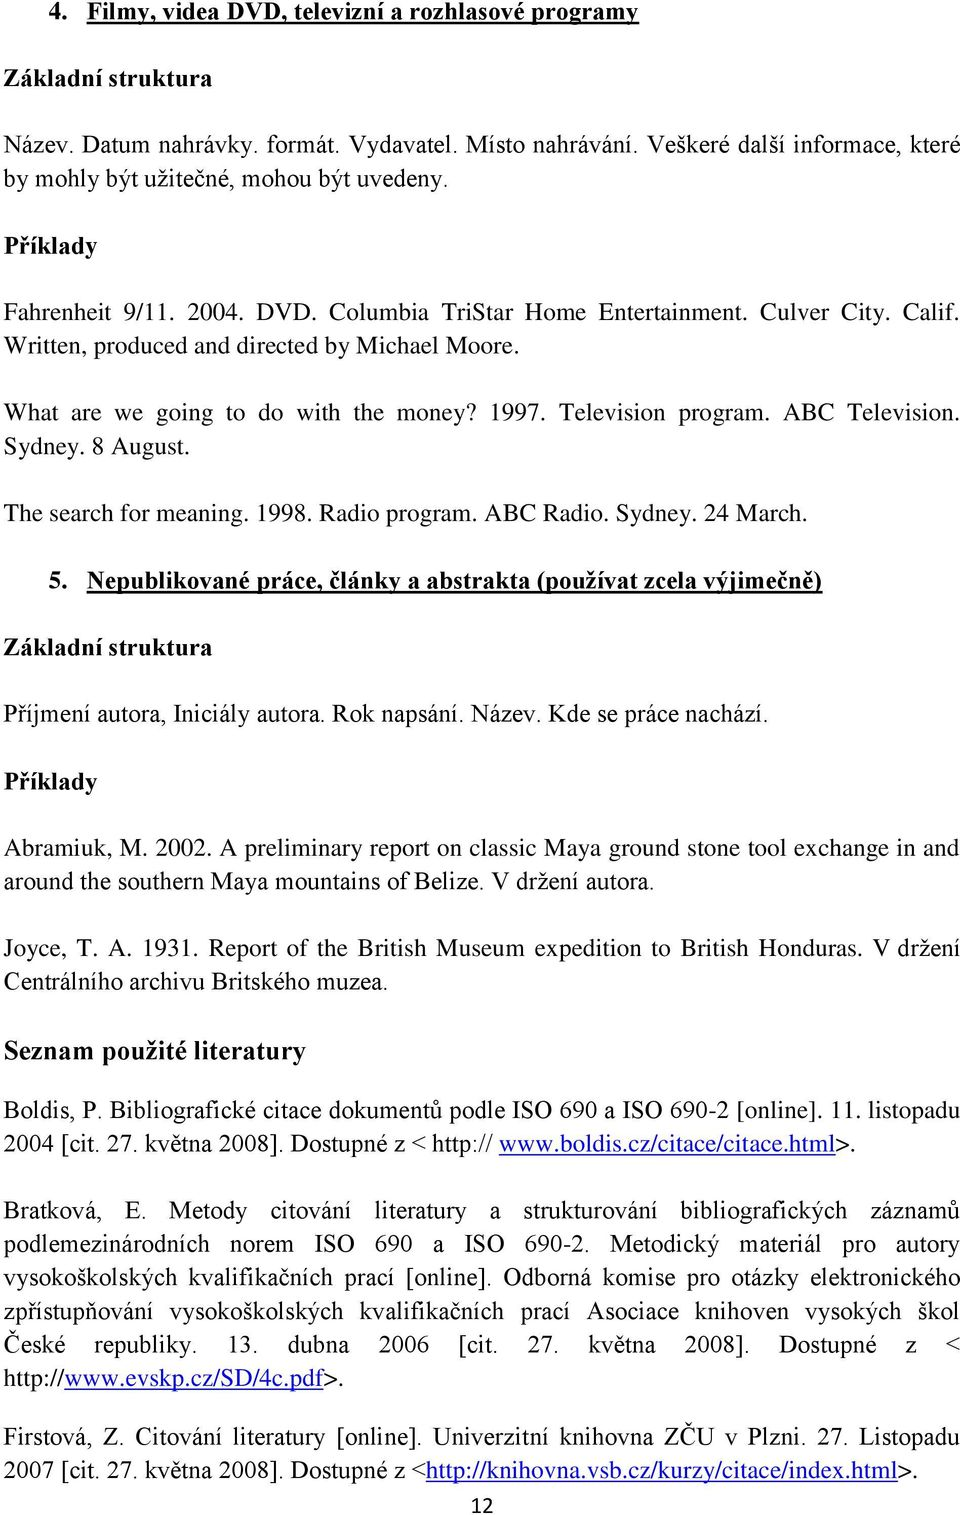 ABC Television. Sydney. 8 August. The search for meaning. 1998. Radio program. ABC Radio. Sydney. 24 March. 5.